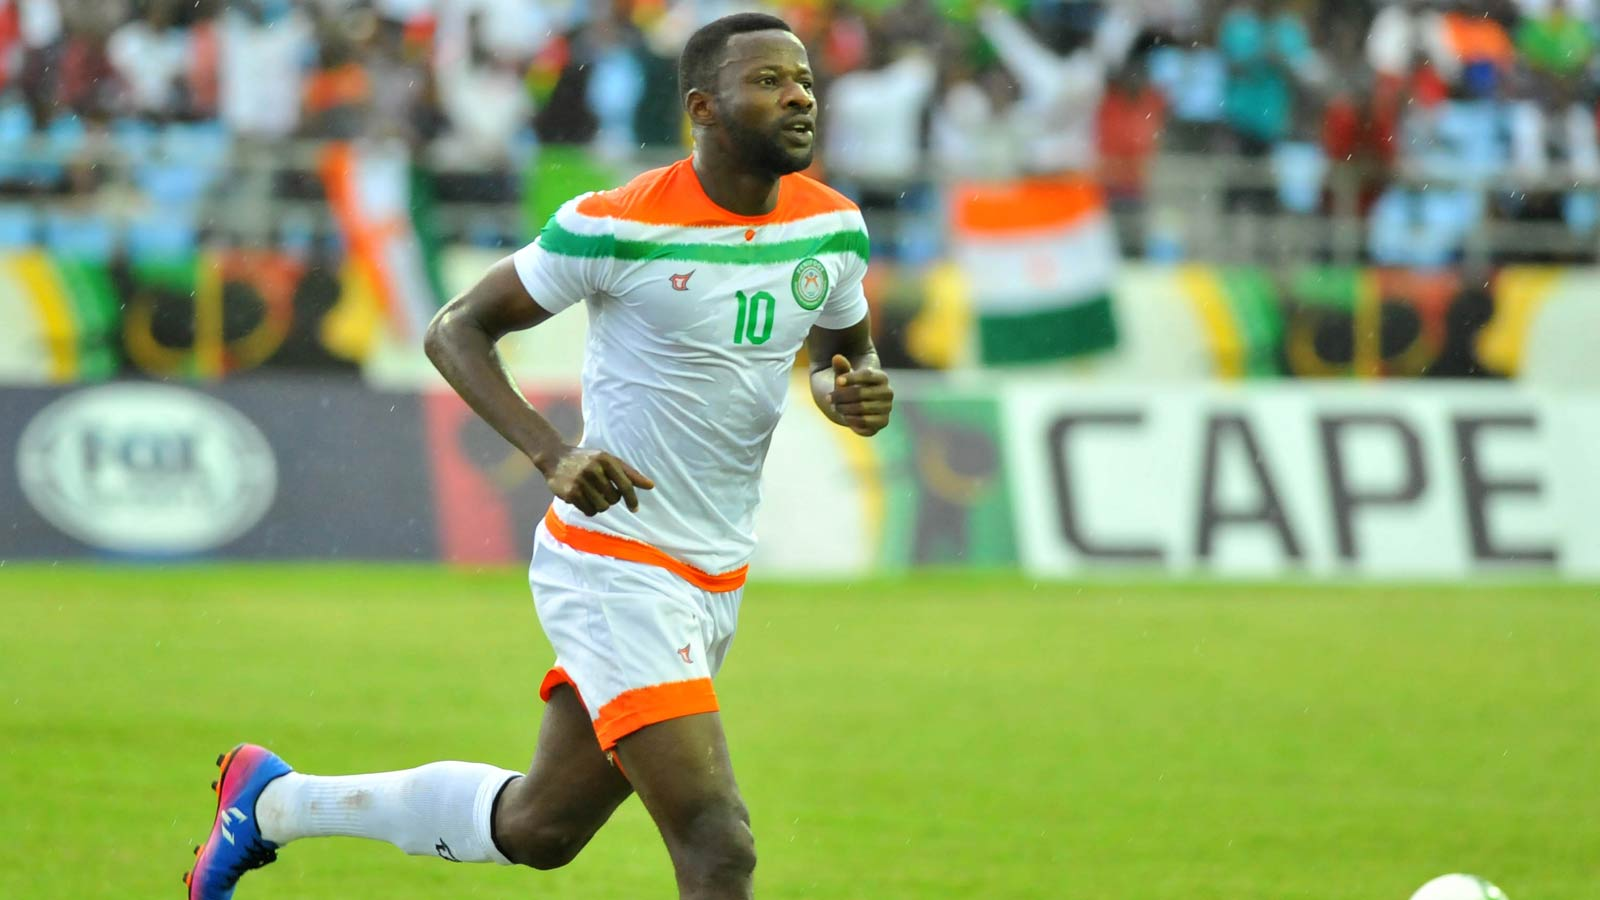 2017 WAFU Nations Cup: Niger beat Benin to claim bronze medal